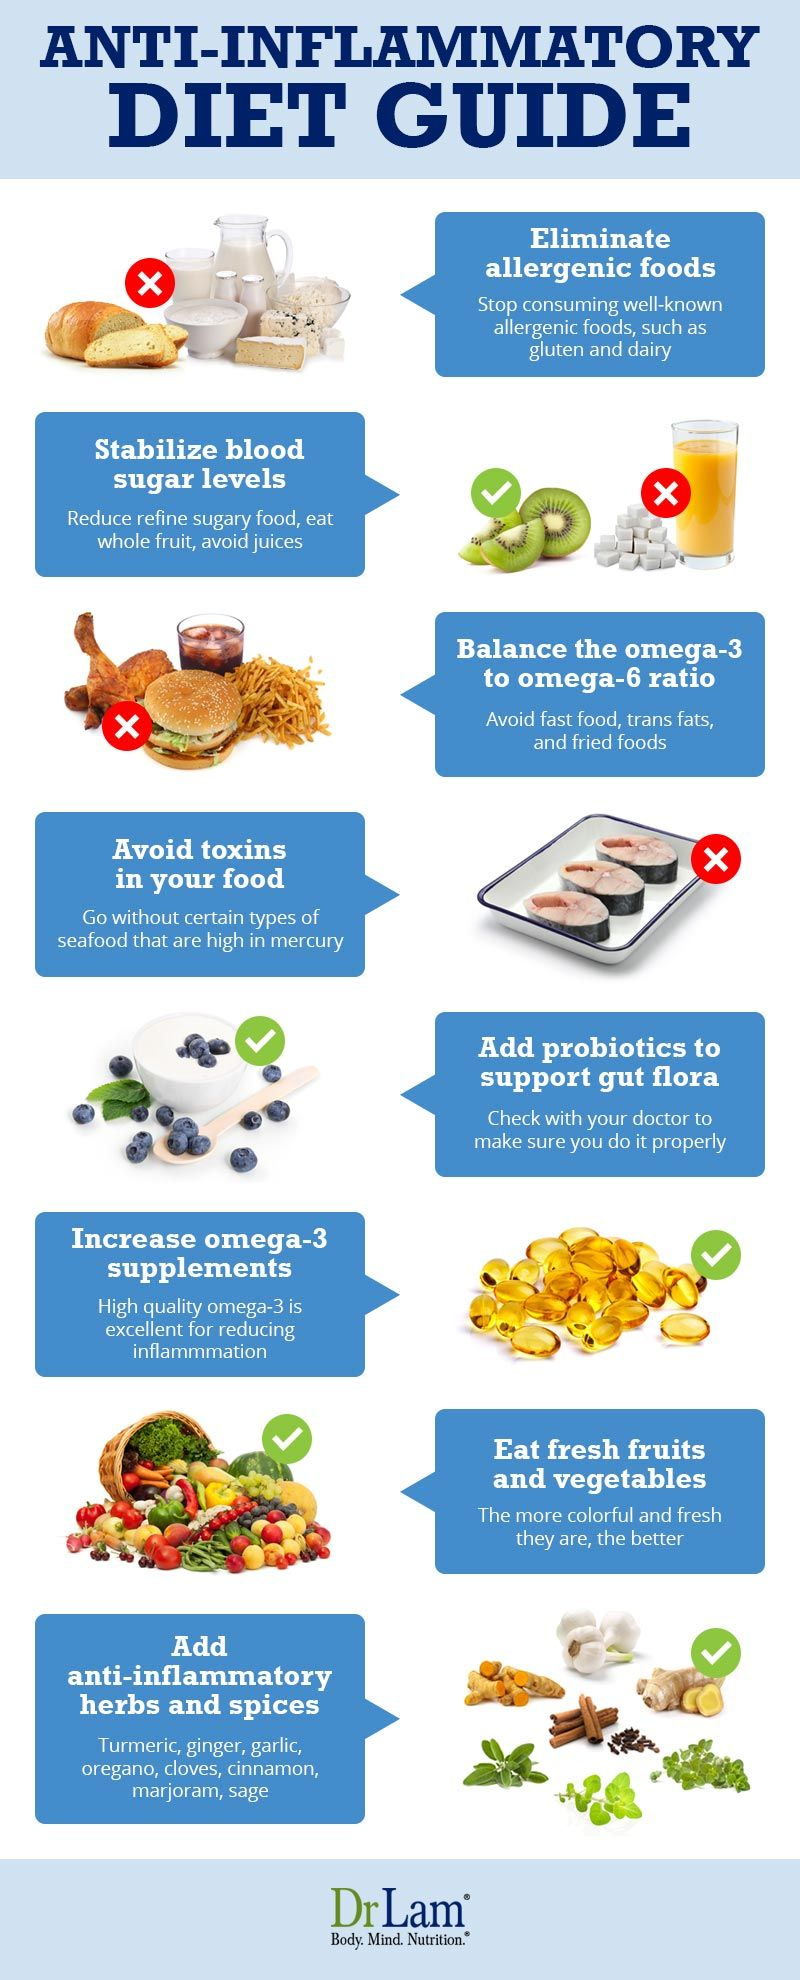 Arthritis Diet and Food: Foods to Avoid